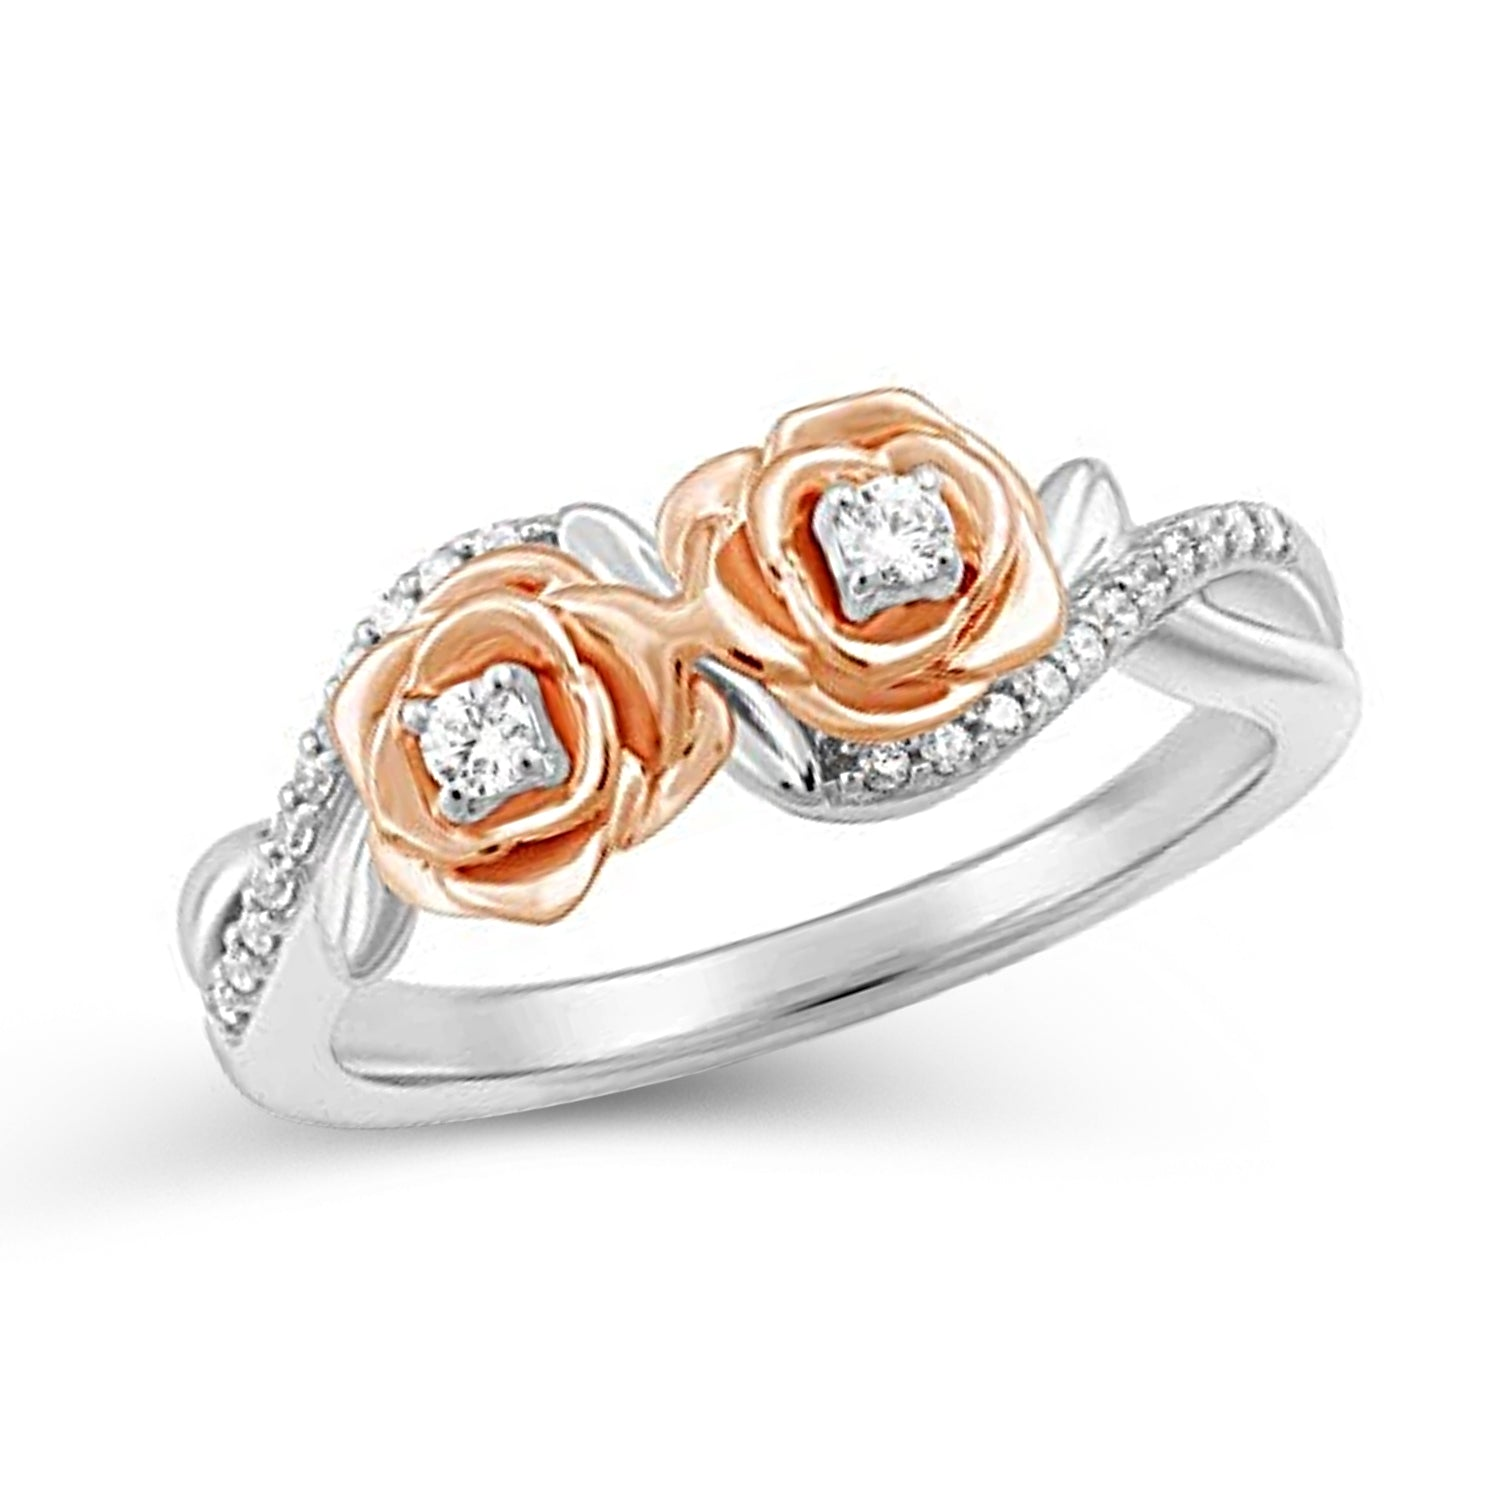 enchanted_disney-belle_rose_fashion_ring-rose_gold_plated_silver_1/6CTTW_1